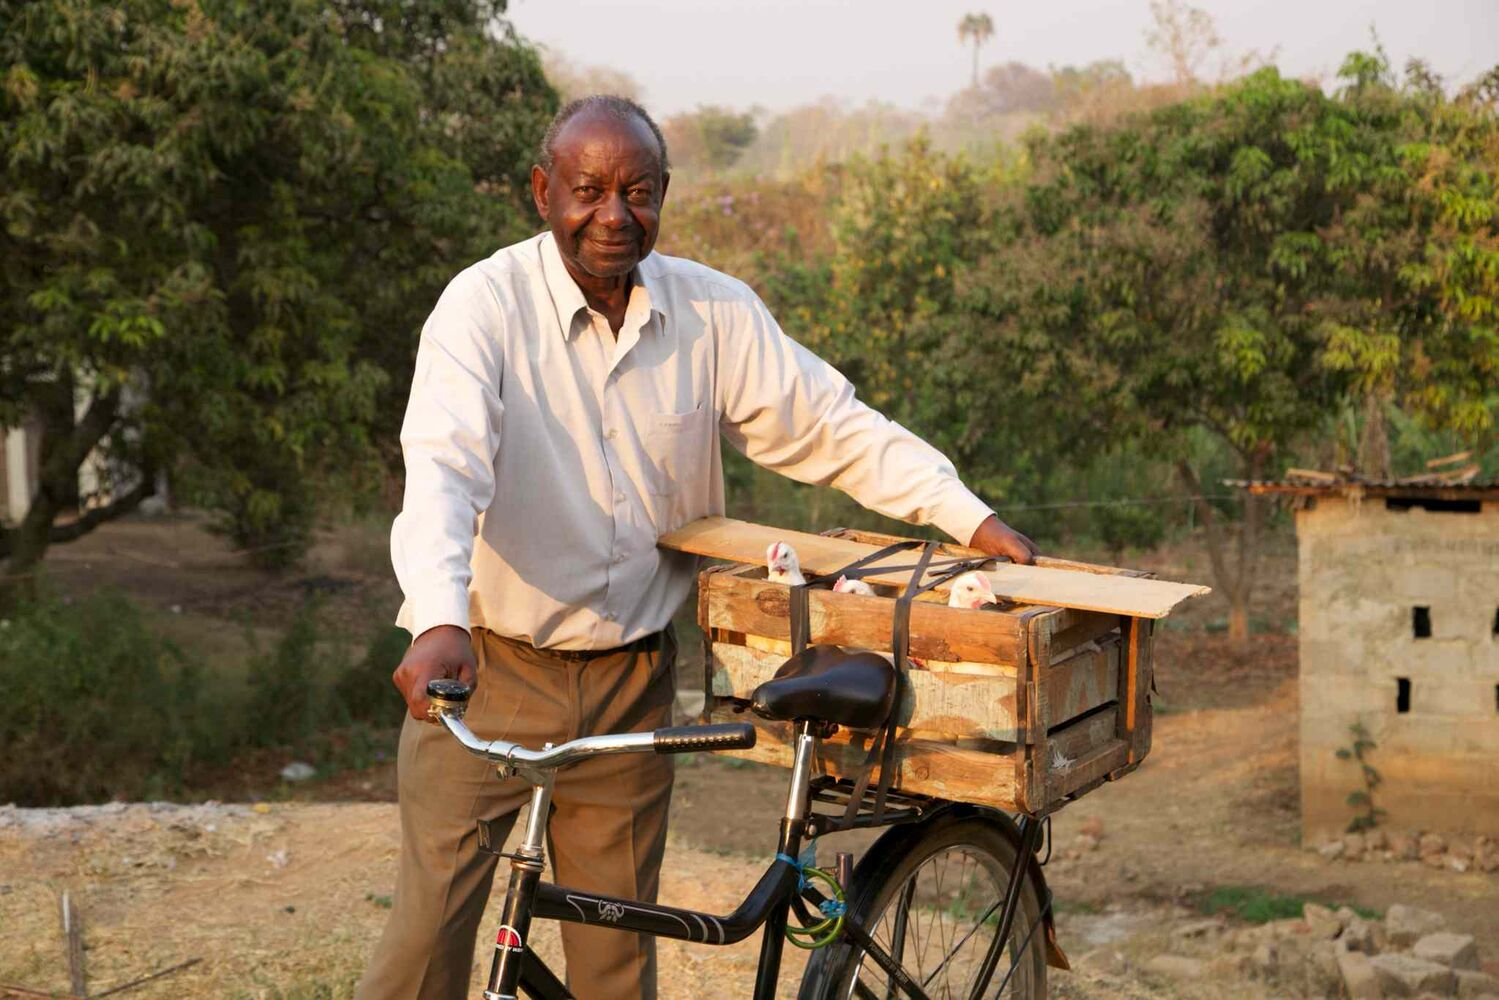 George is a chicken farmer in Zambia.